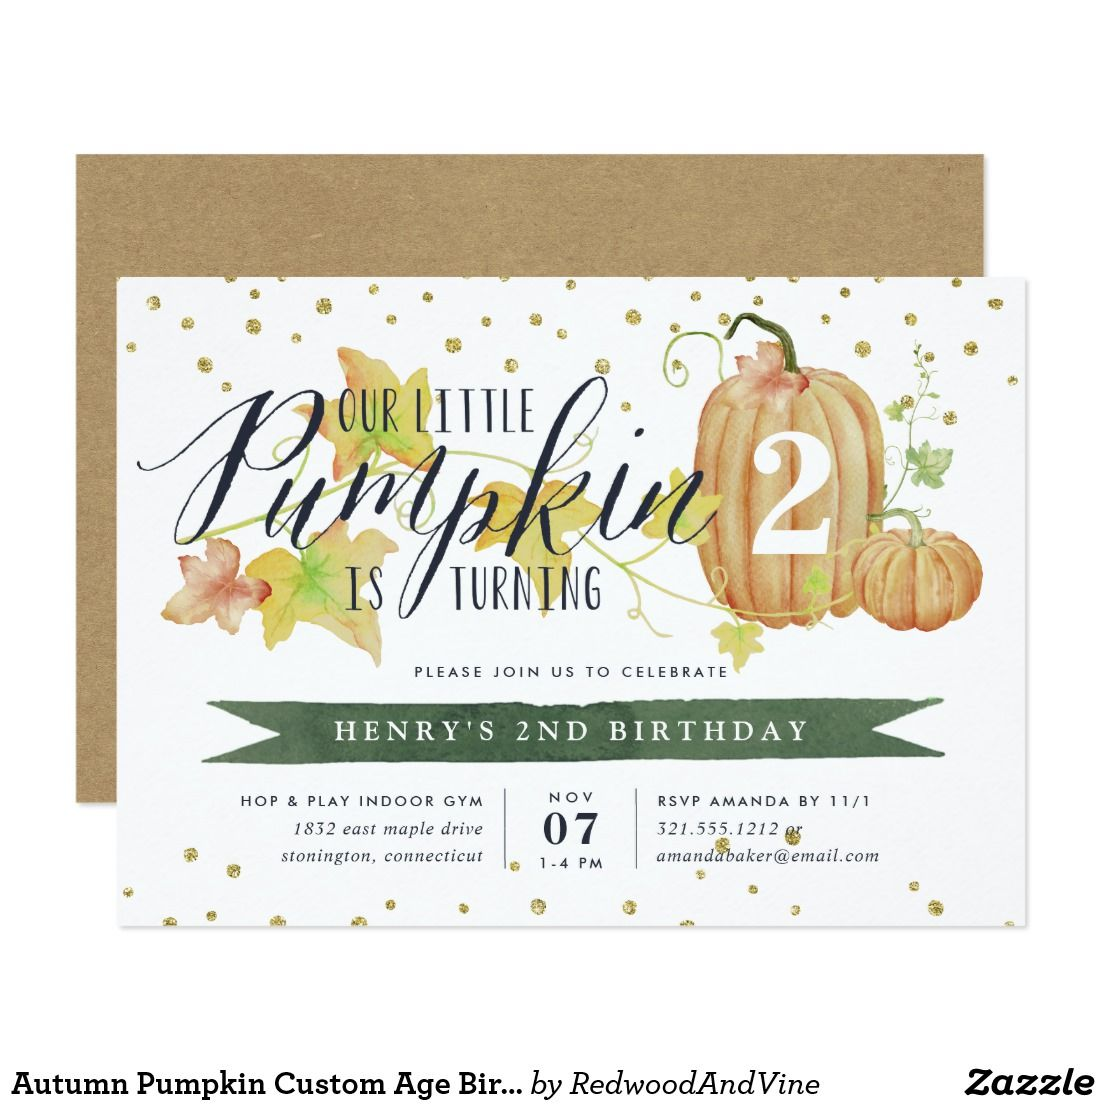 Autumn Pumpkin Custom Age Birthday Party Invitation Fall In Love With These Rustic Elegant Kids Invitations An Color Palette Of